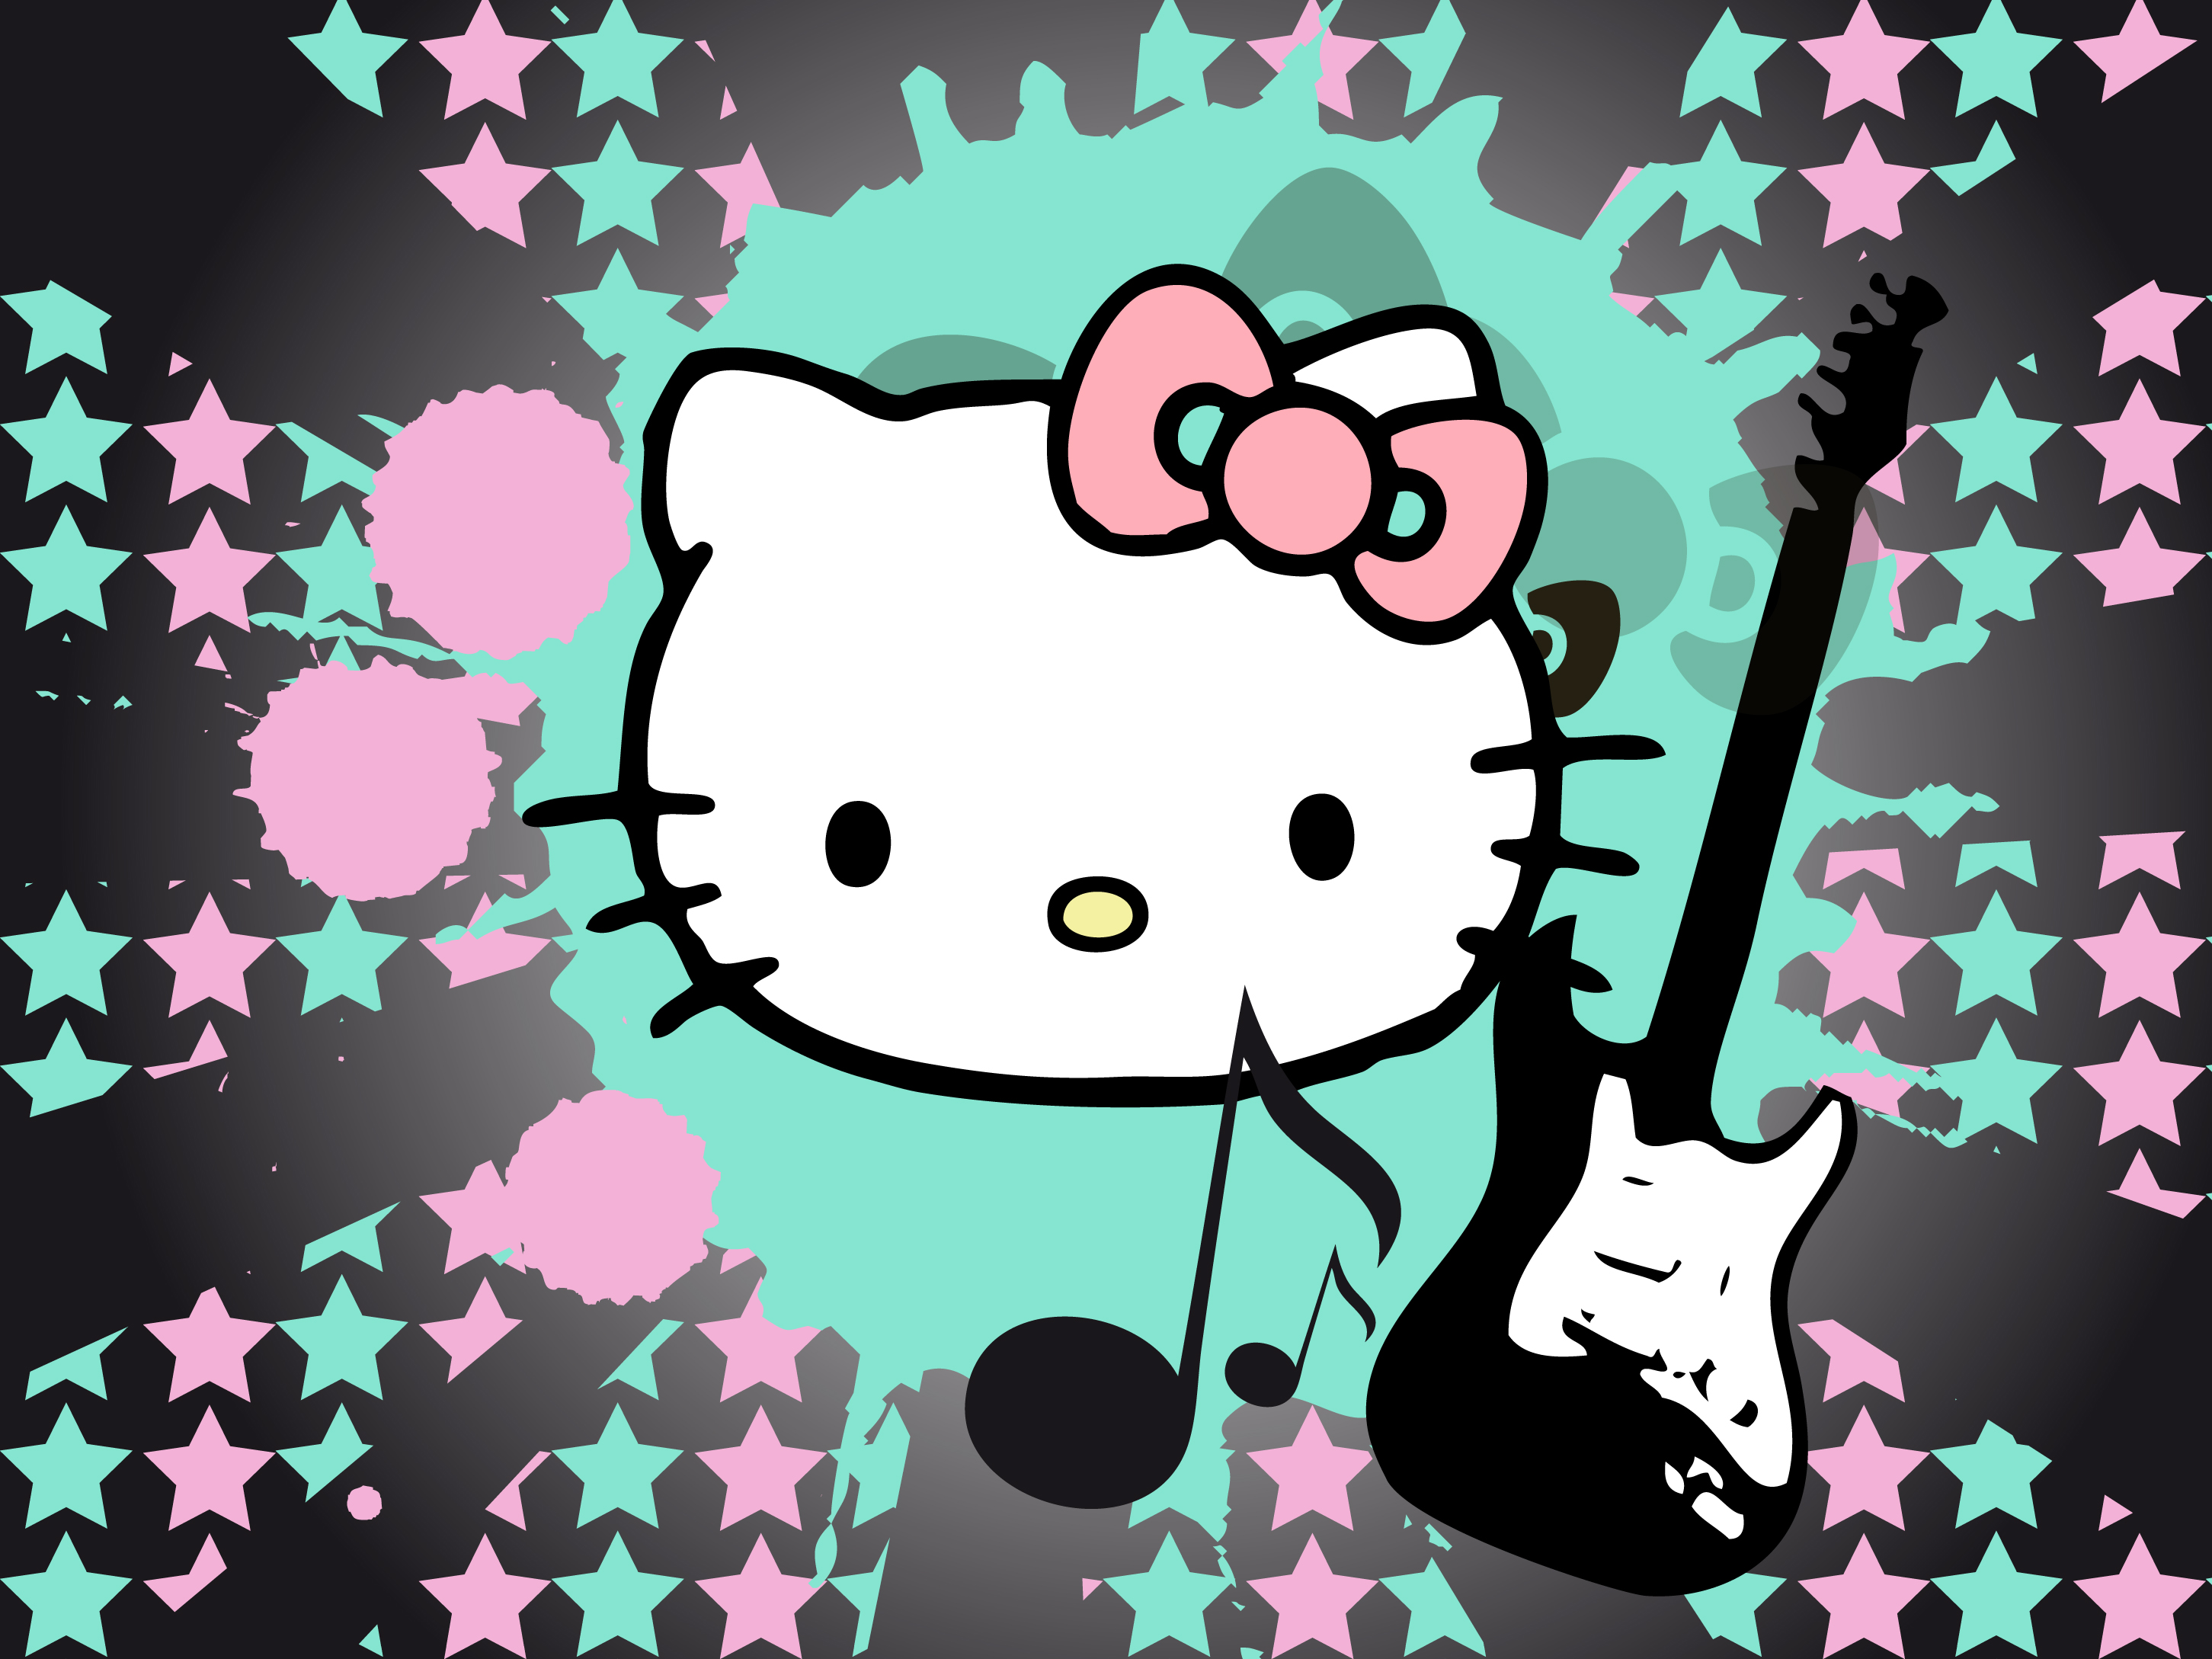 Good Wallpaper Hello Kitty Animated - aries40-wordpress-co-hellokitty-49  Pictures_28143.jpg